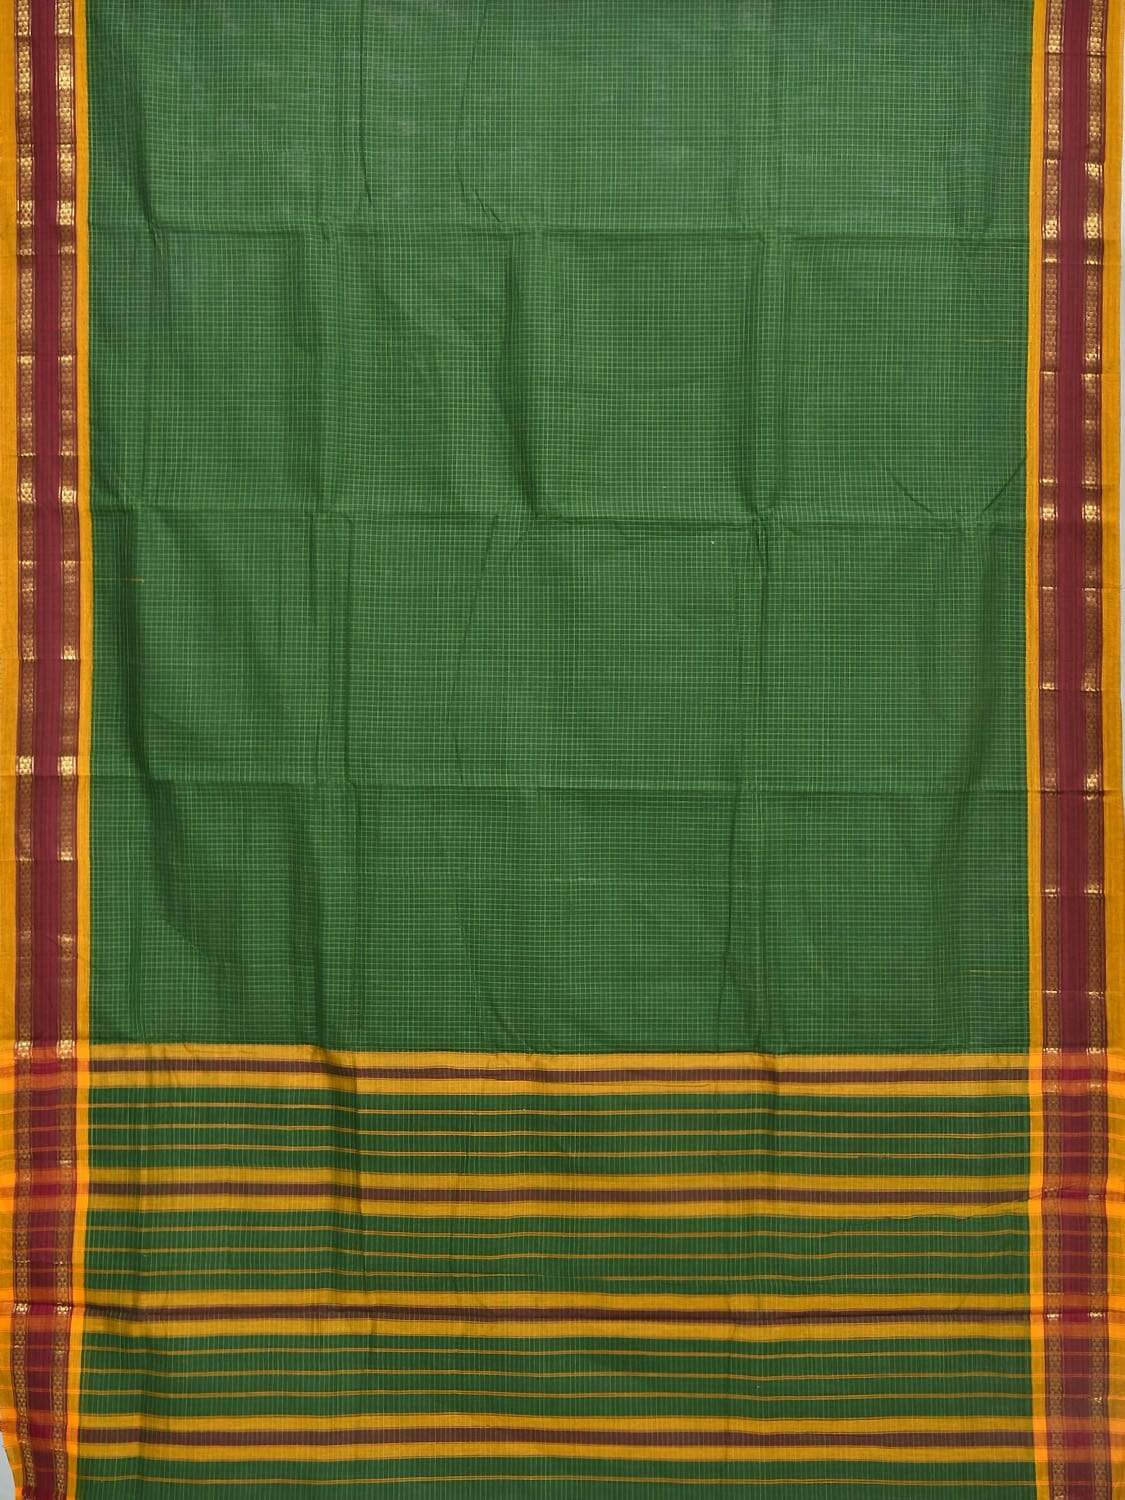 Green Narayanpet Cotton Handloom Saree with Checks and Border Design np0246